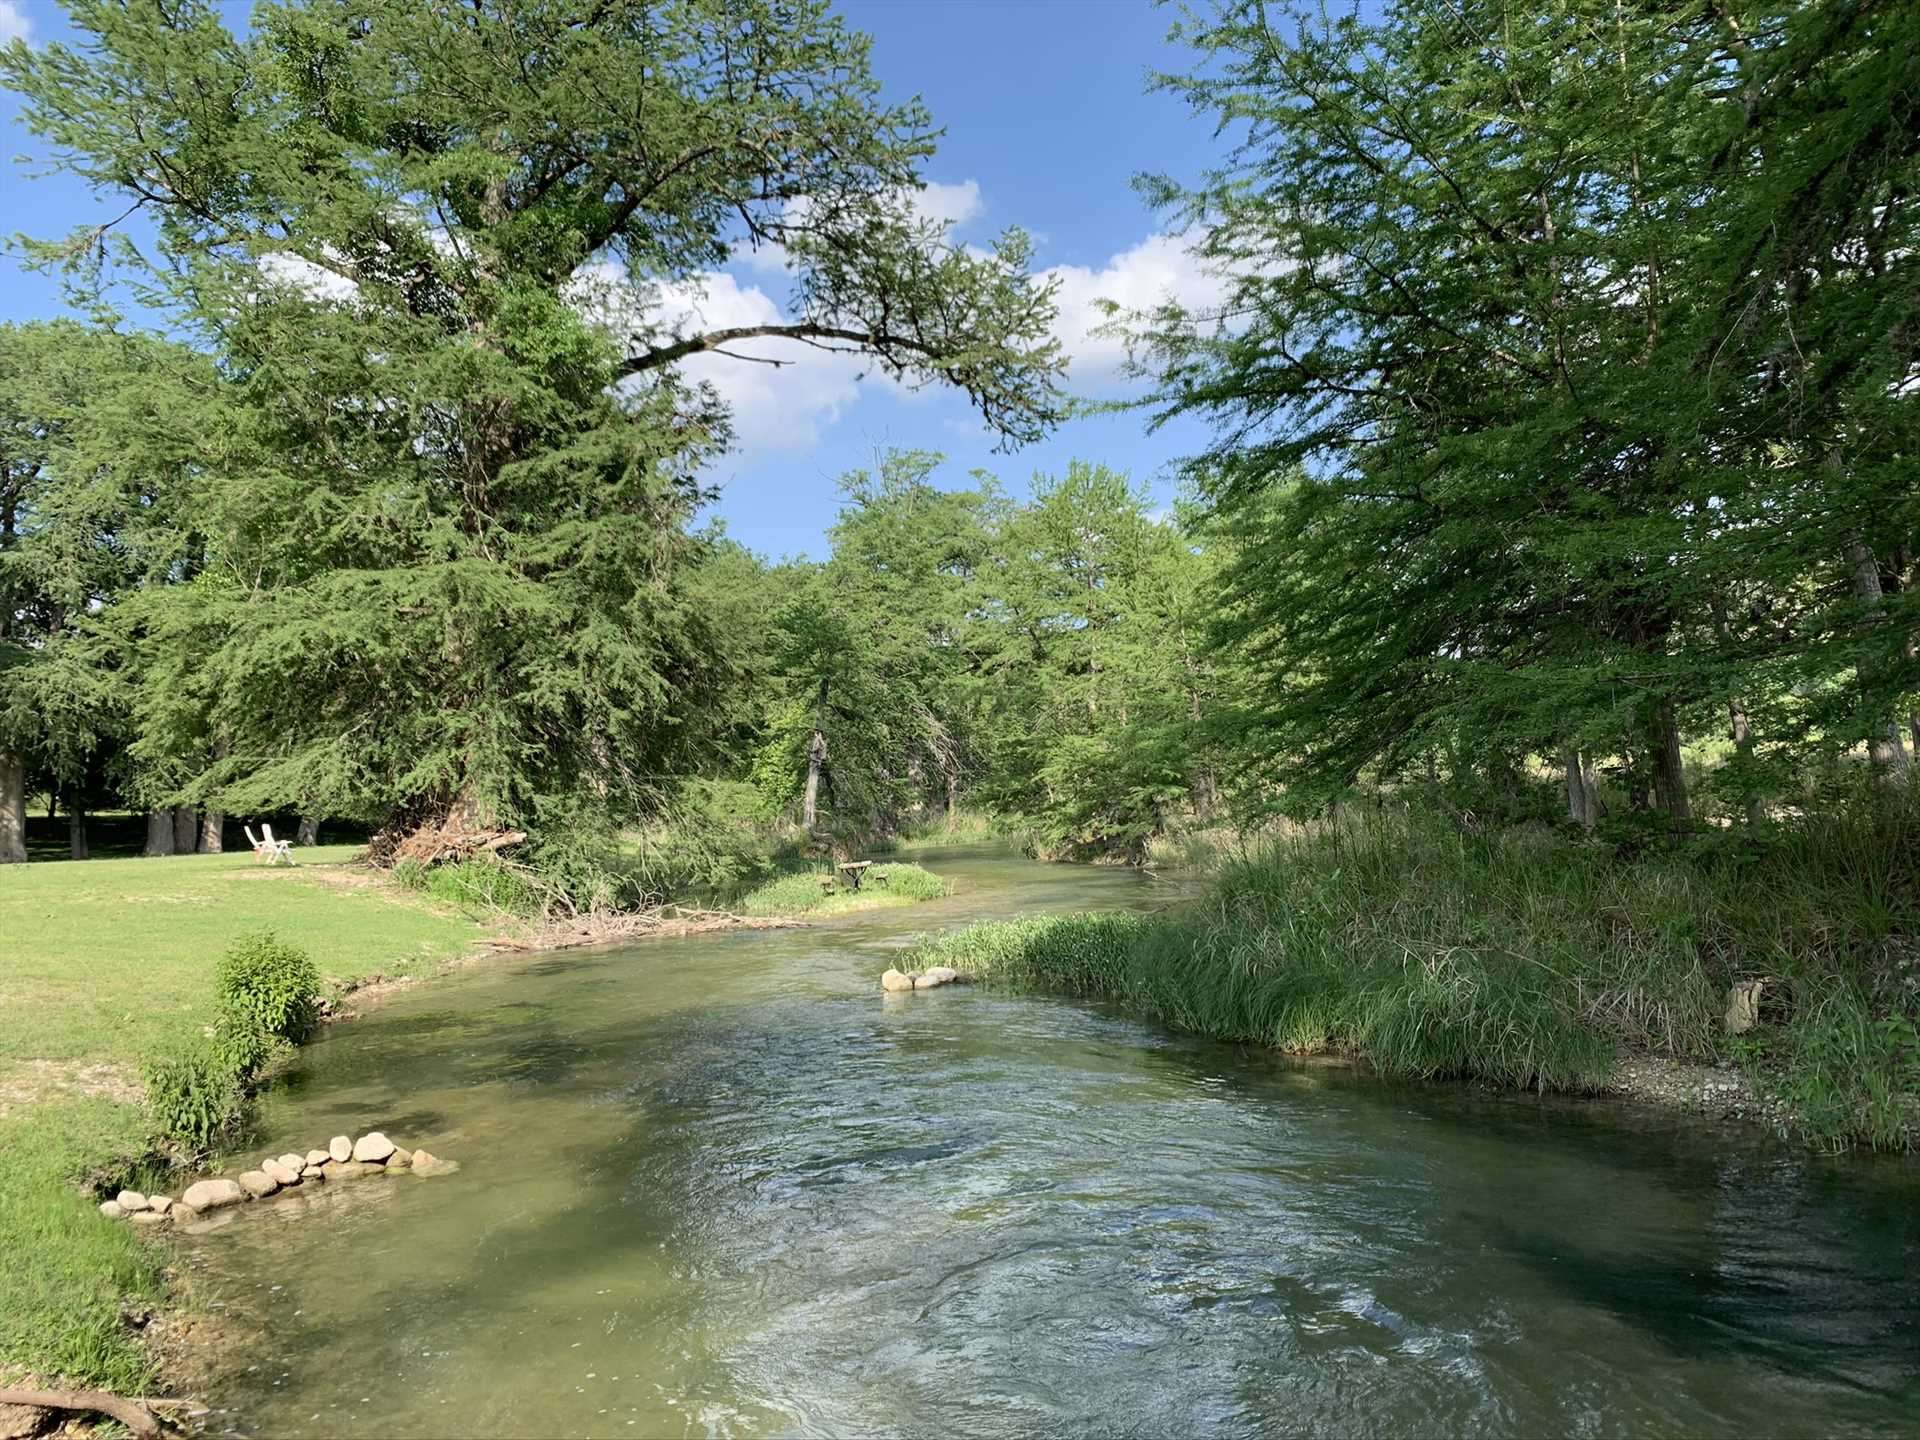 Your immediate access to the Guadalupe River is shared with two other cabins, but there's plenty of room for both privacy and making new friends.